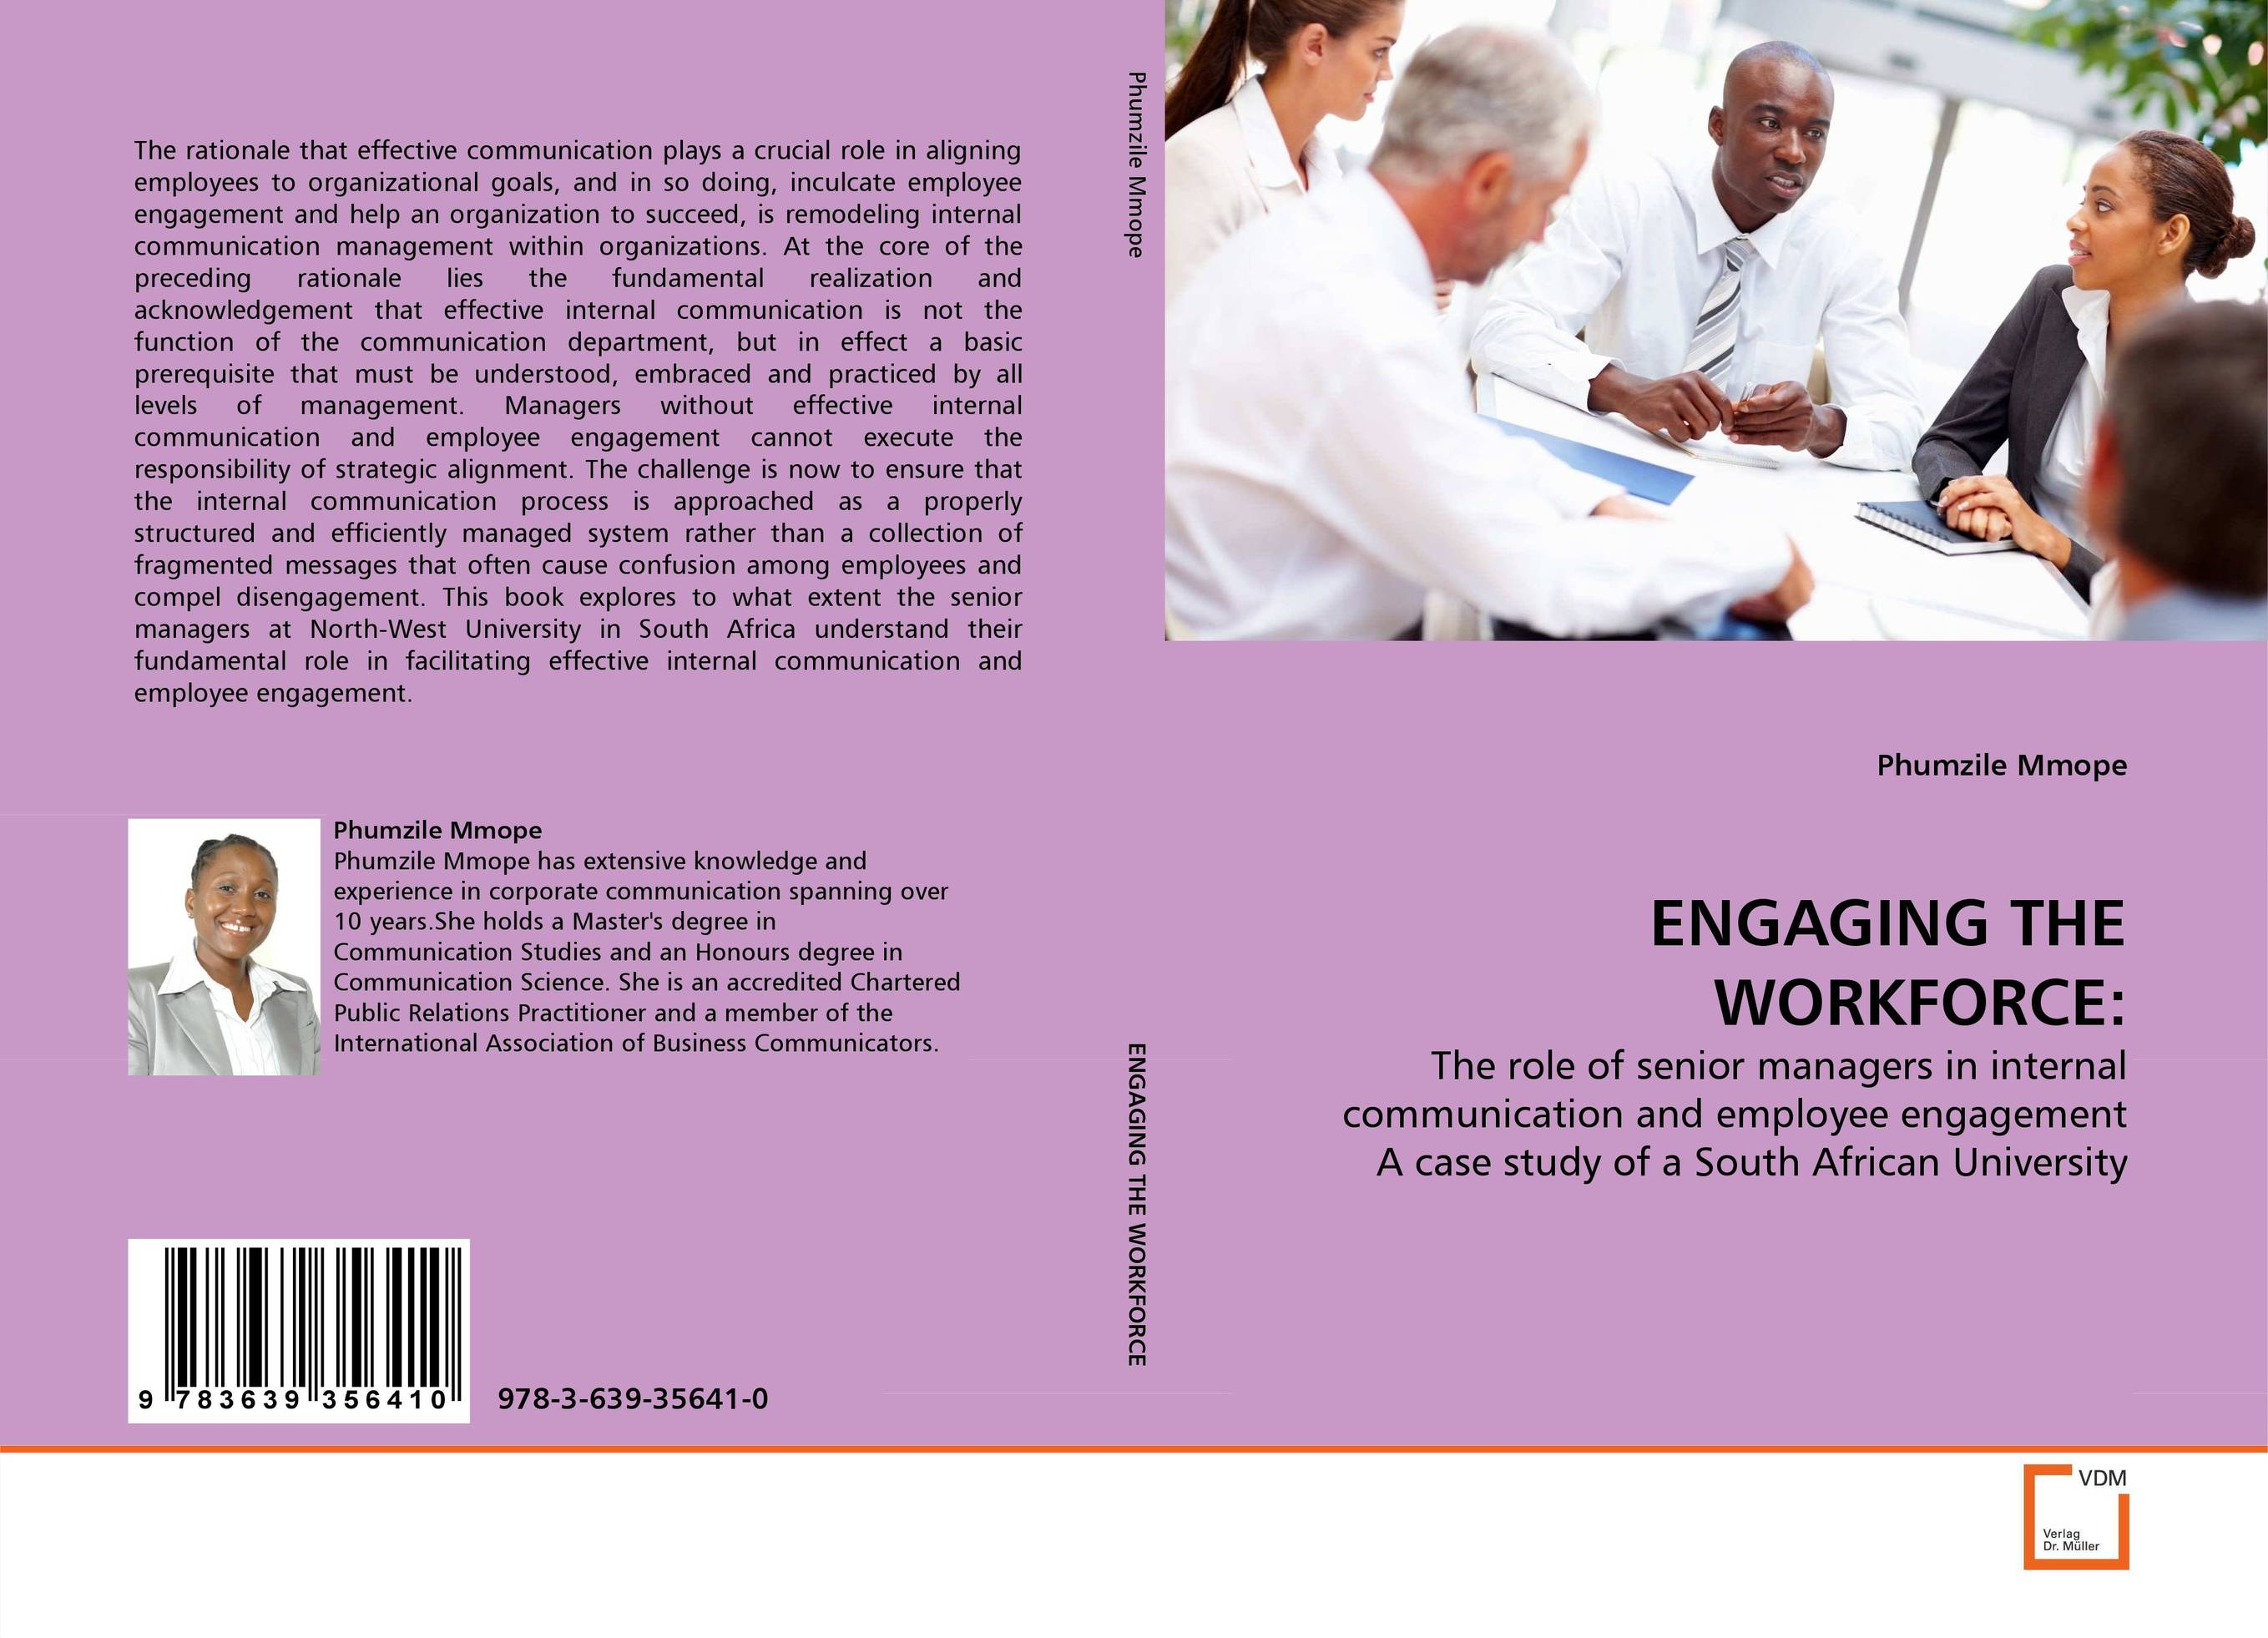 ENGAGING THE WORKFORCE: купить